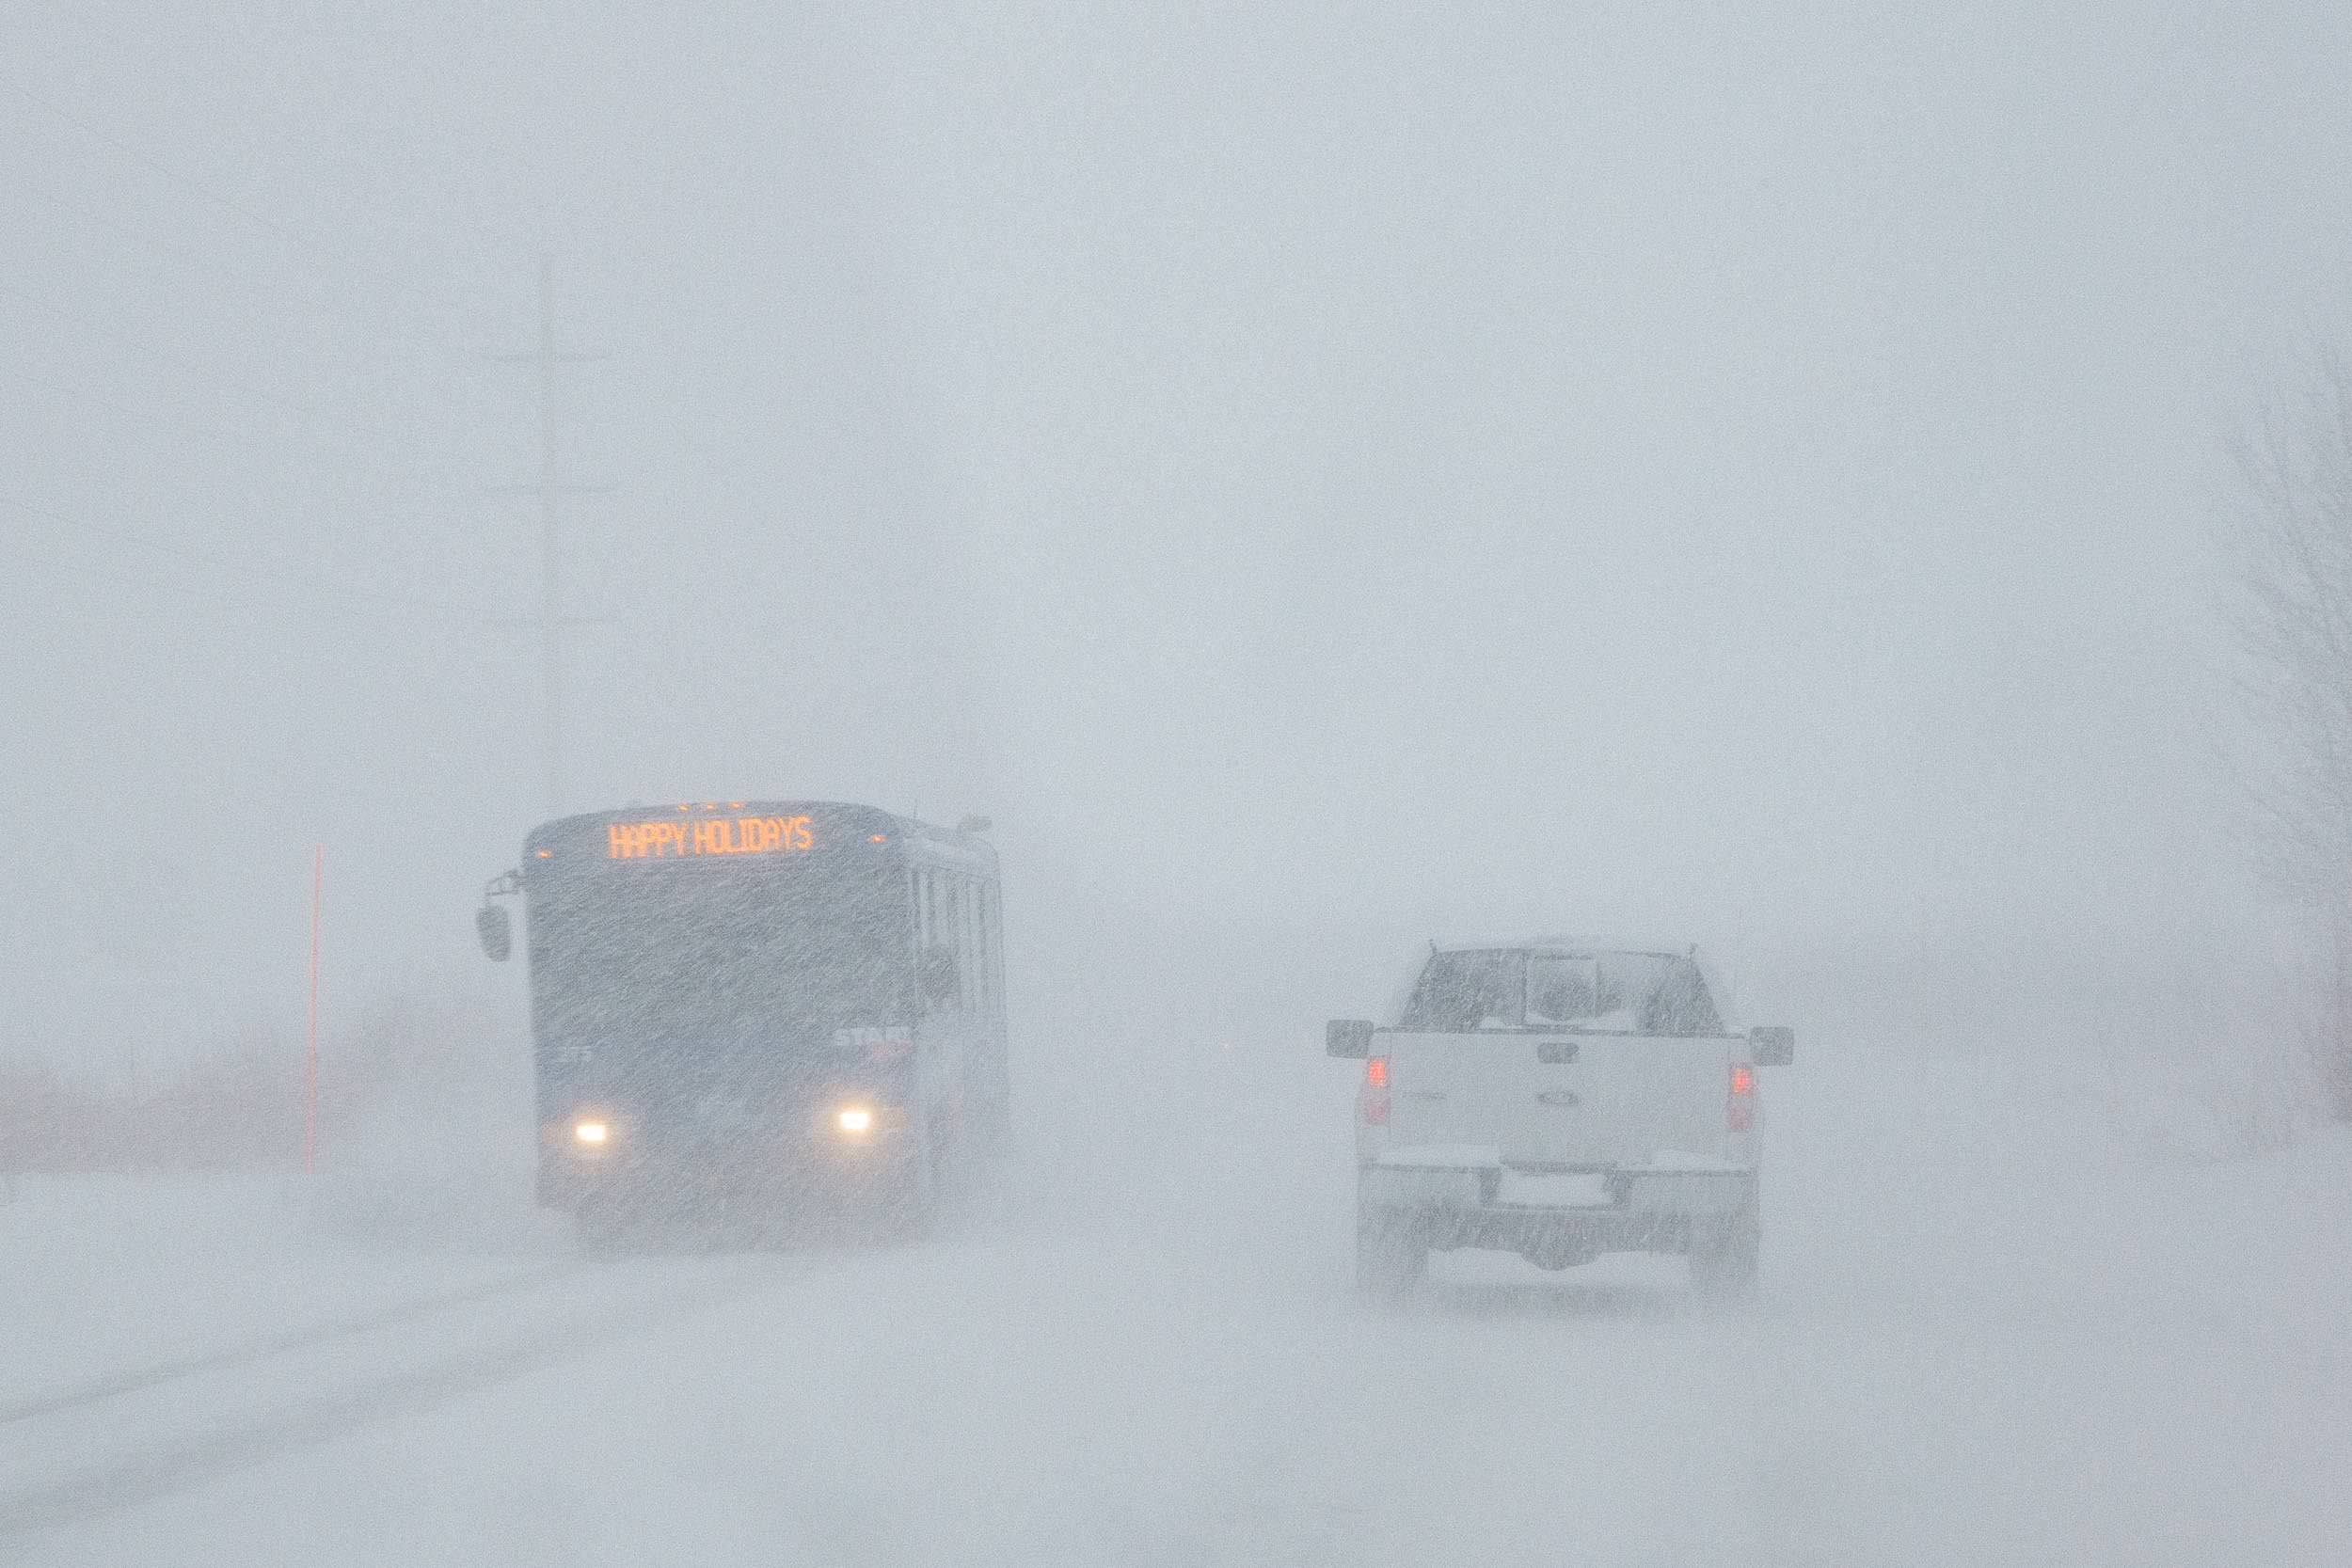 The Jackson Start bus headed back to town to pick up more skiers during a major winter snow storm